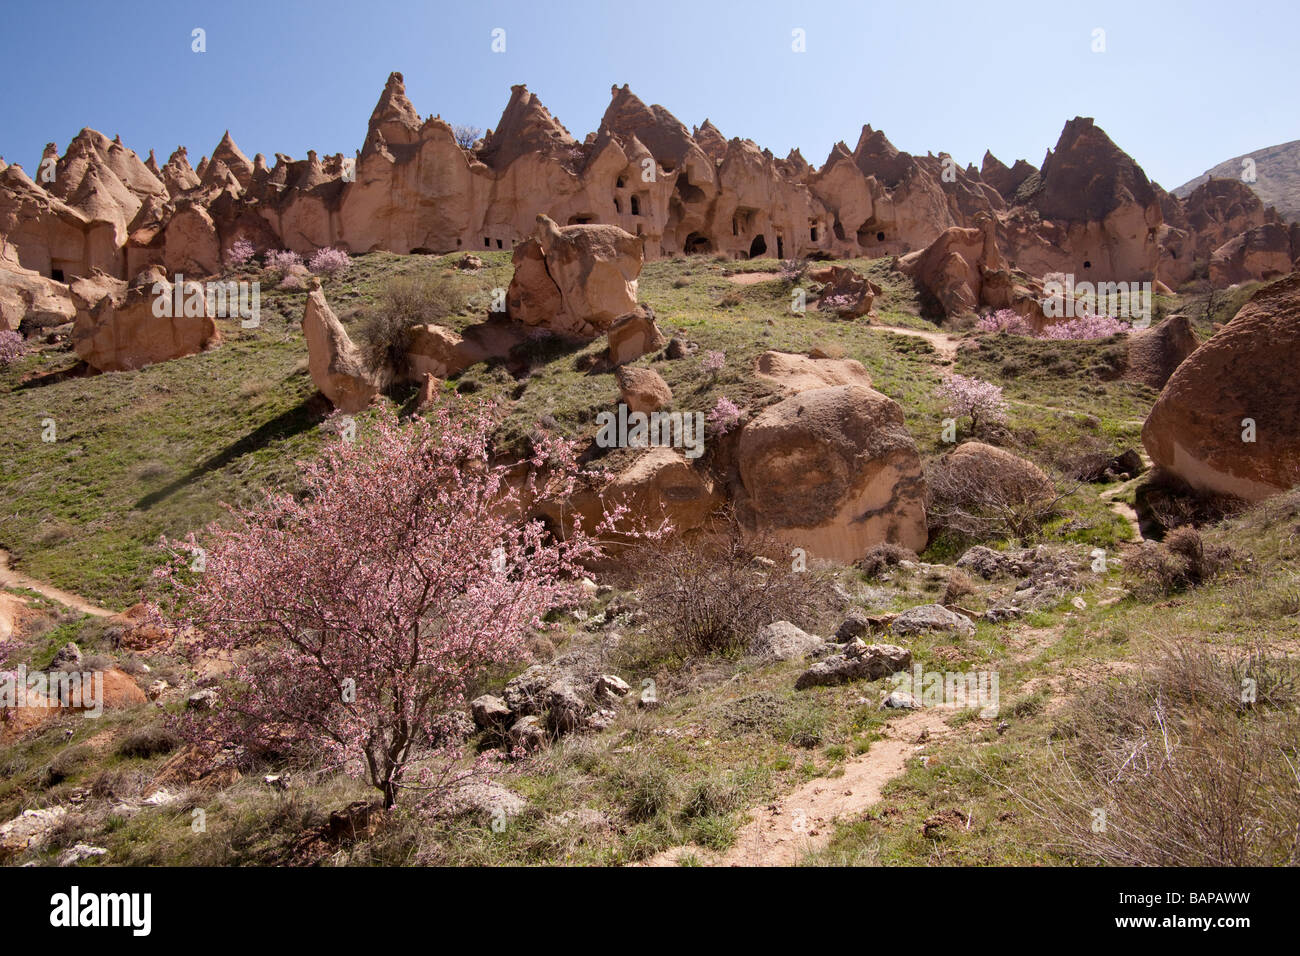 Fairy chimneys and dwellings in Cappadocia Turkey - Stock Image